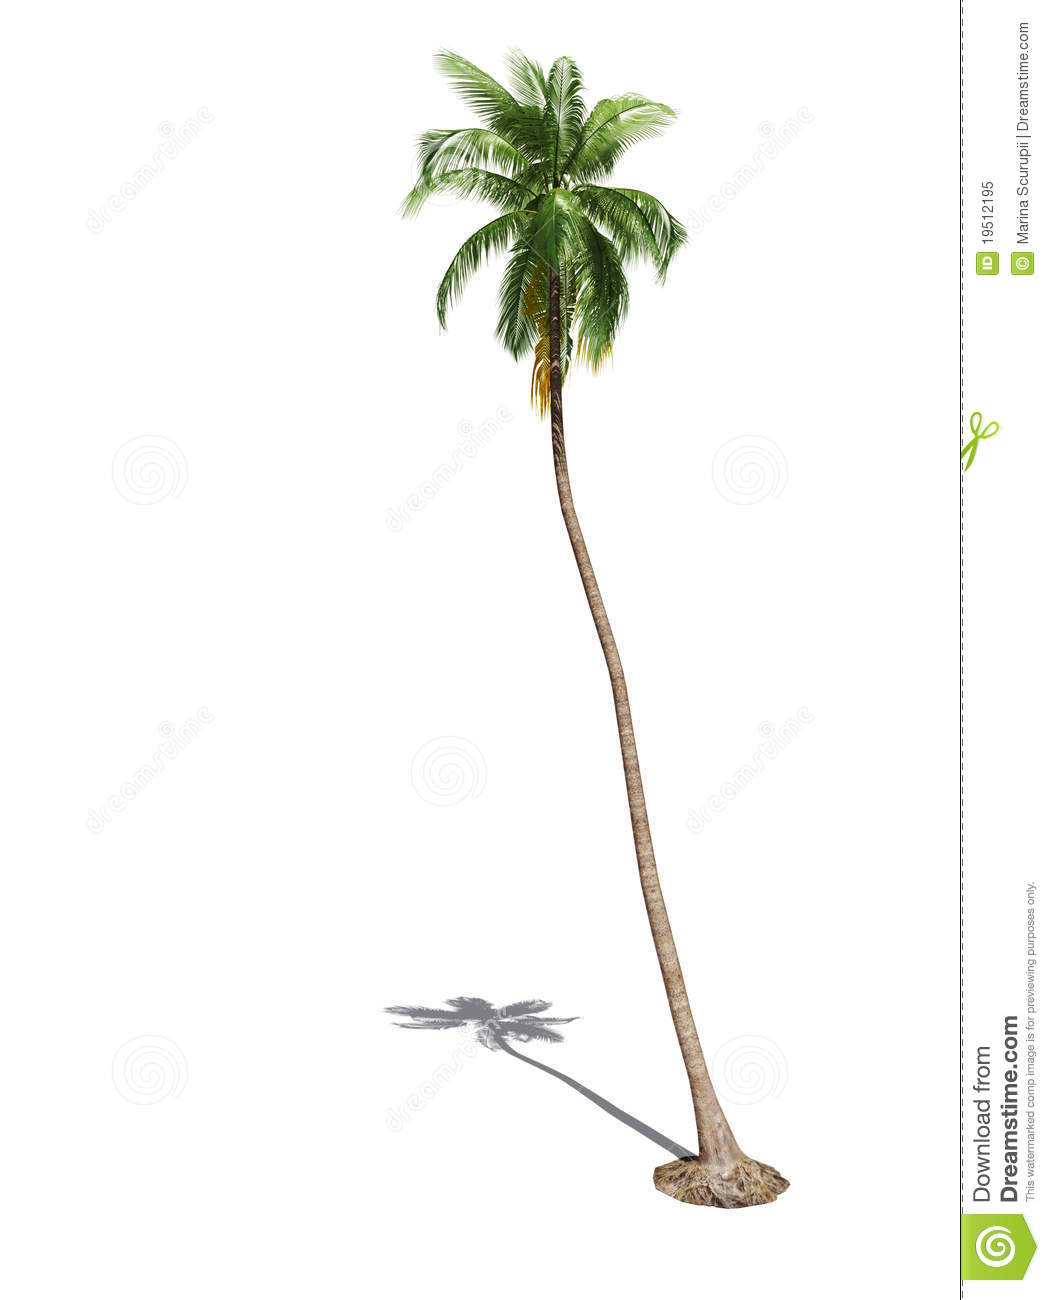 3d palm tree stock image  Image of foliage, fronds, botany - 19512195